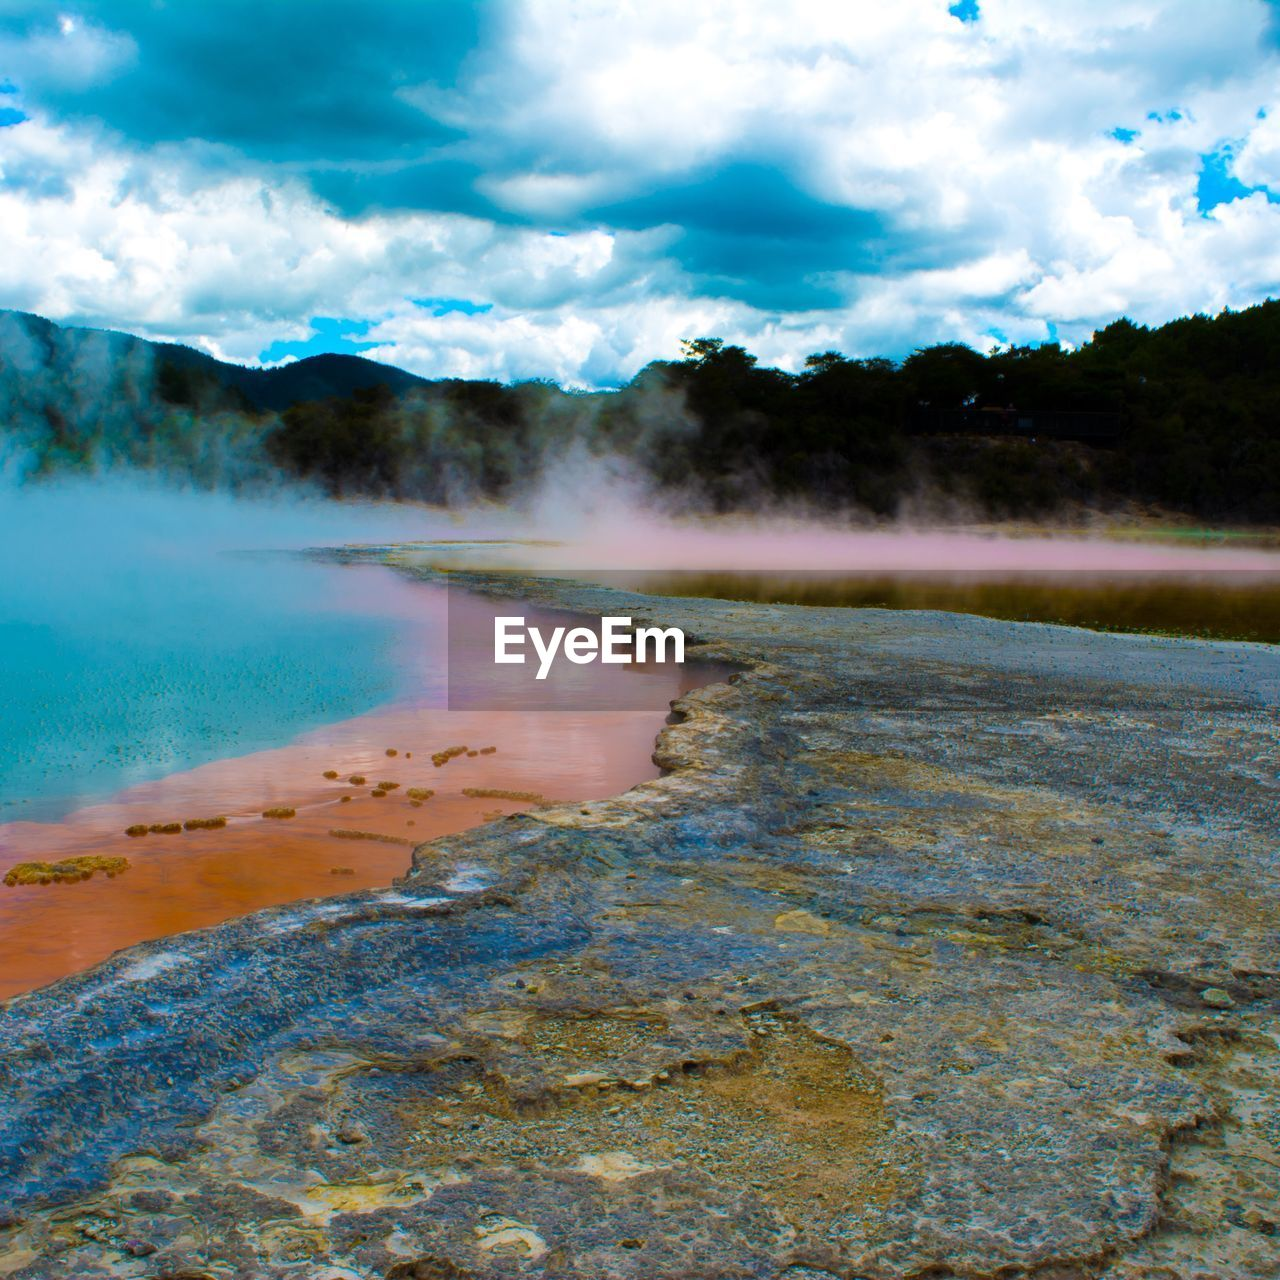 geyser, water, hot spring, steam, nature, geology, outdoors, scenics, sky, beauty in nature, no people, day, tourism, physical geography, travel destinations, tranquility, cloud - sky, lake, landscape, mountain